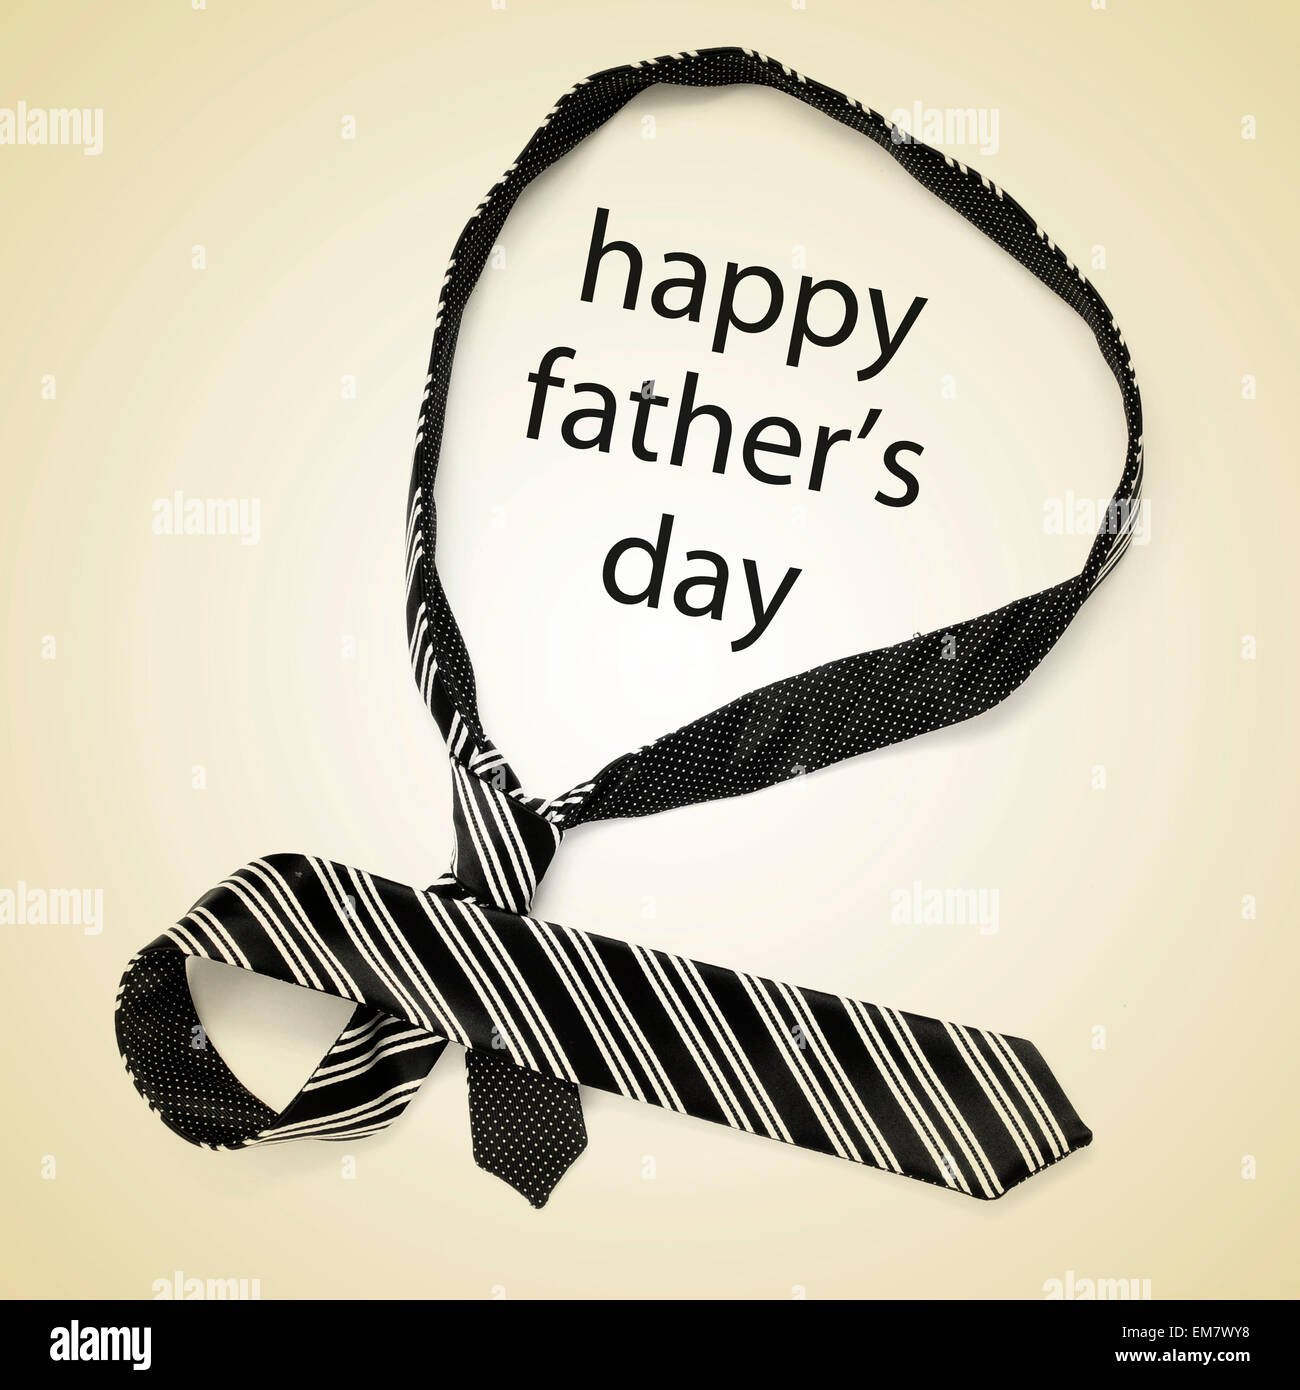 a necktie and the sentence happy fathers day on a beige background